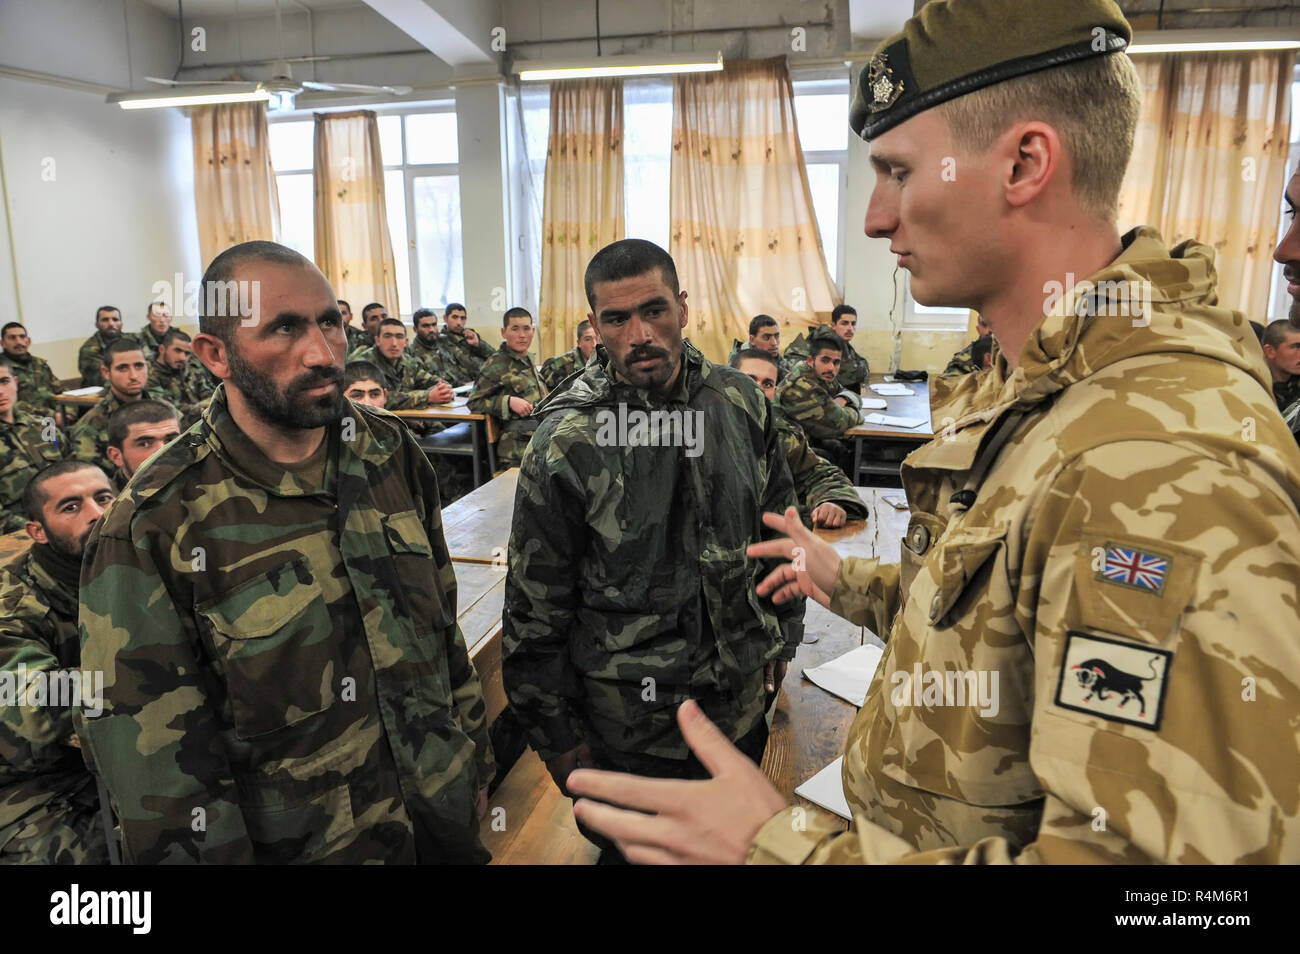 88ff2745a Kabul, Kabul/ Afghanistan - circa 2008: The Kabul Military Training Centre  is a basic training centre for the Afghan Armed Forces. Located about 8 mil